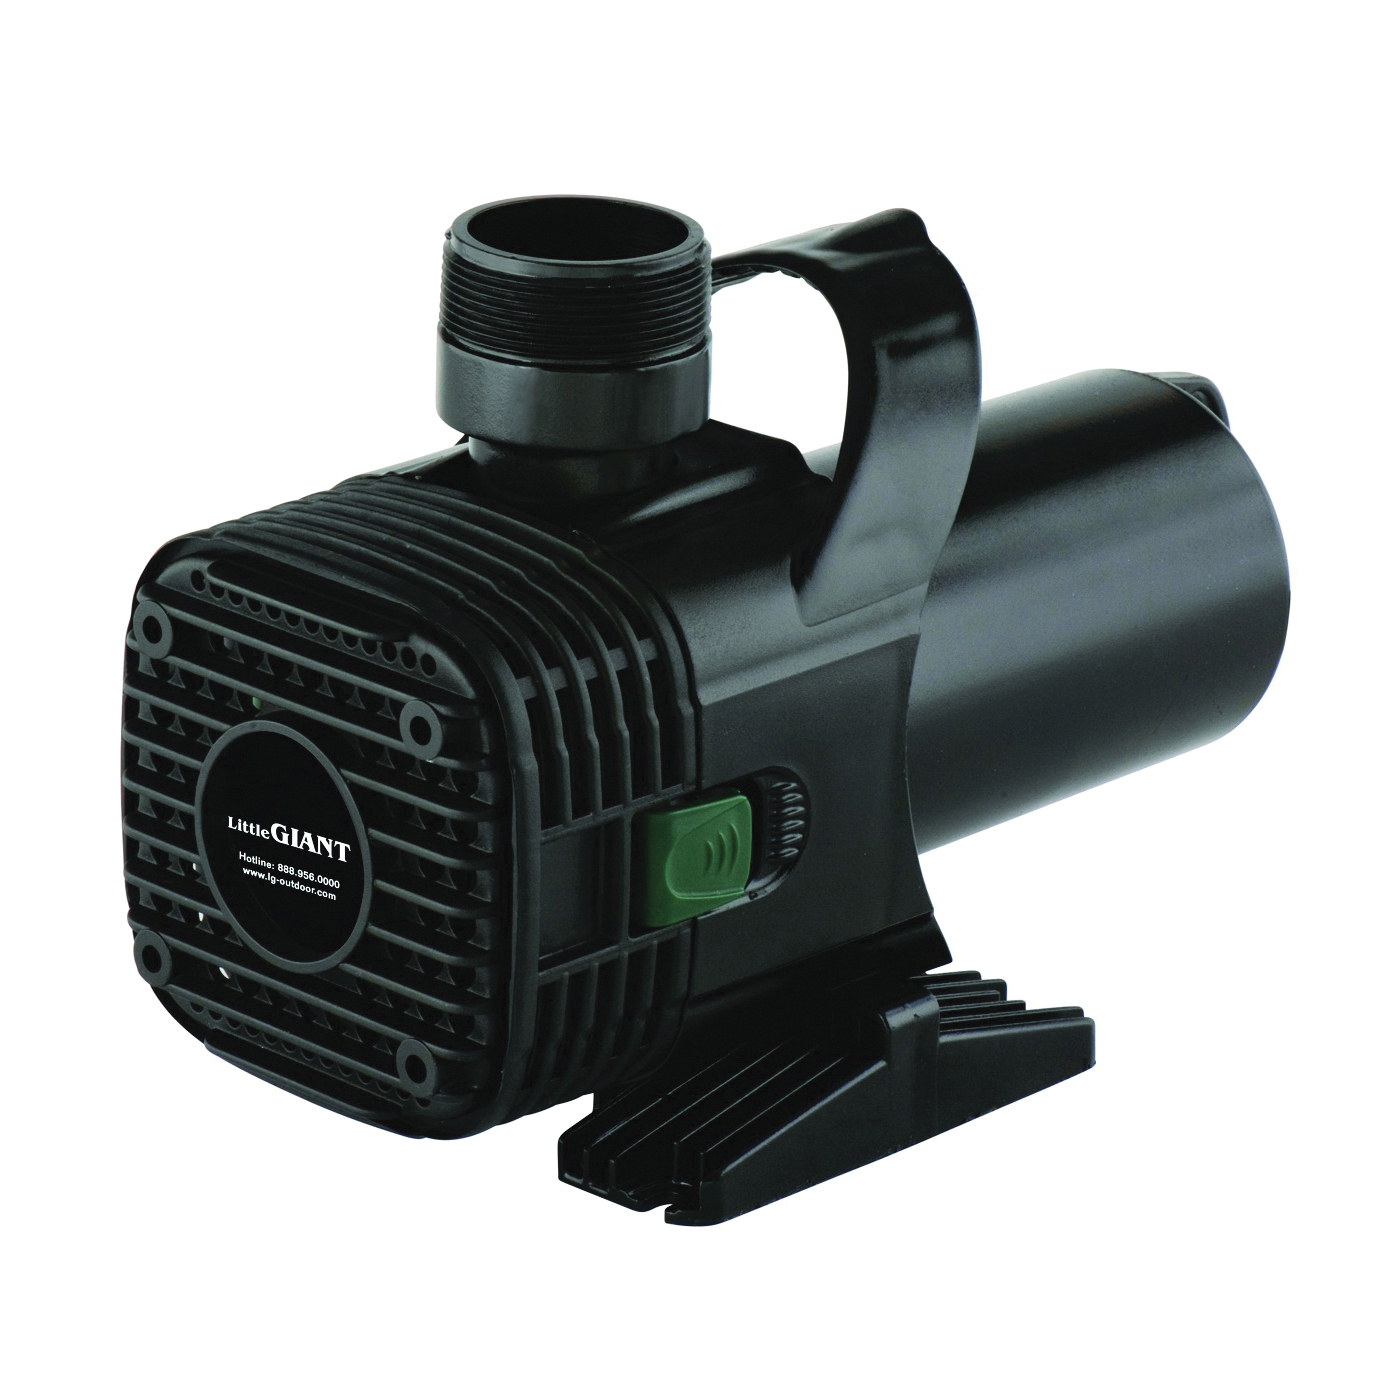 Picture of Little Giant 566727 Wet Rotor Pump, 3 A, 115 V, 2 in Connection, 5550 gph, Horizontal, Vertical Mounting